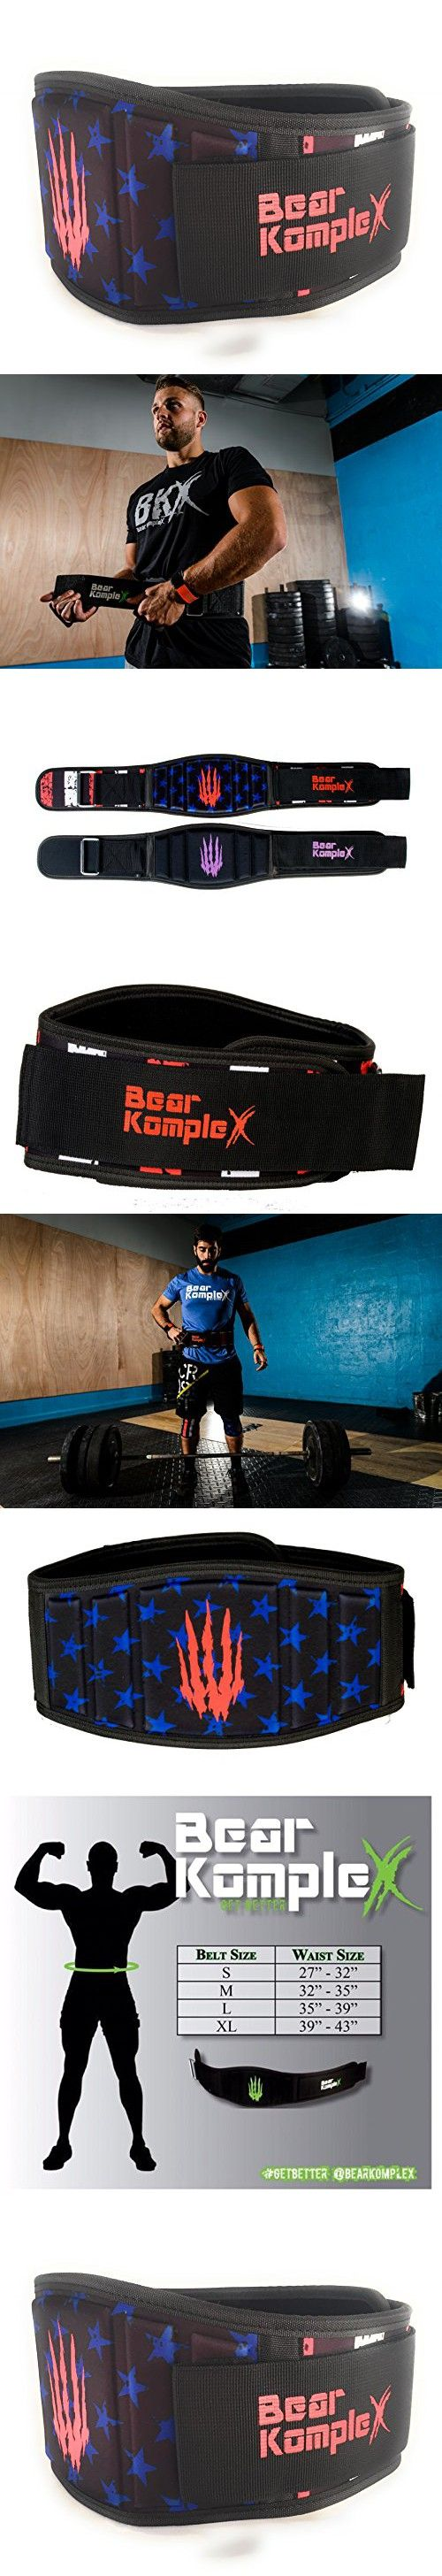 Bear KompleX Weighlifting belt for Powerlifting, Crossfit, Squats, Weight Training and more. Low profile velcro with super firm back for maximum stability and exceptional comfort. STARS LRG belt